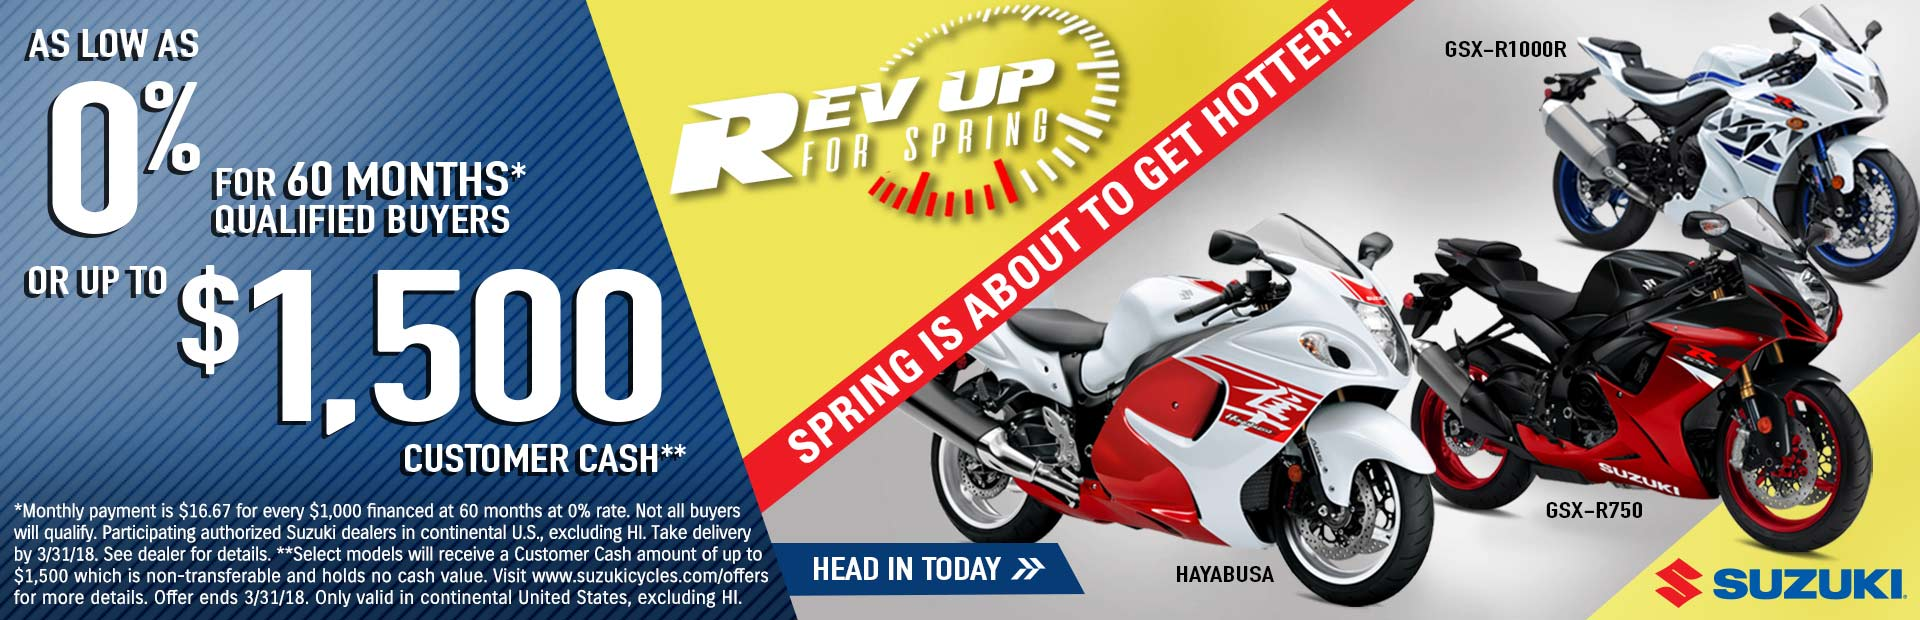 Suzuki: Rev Up for Spring - Sportbike